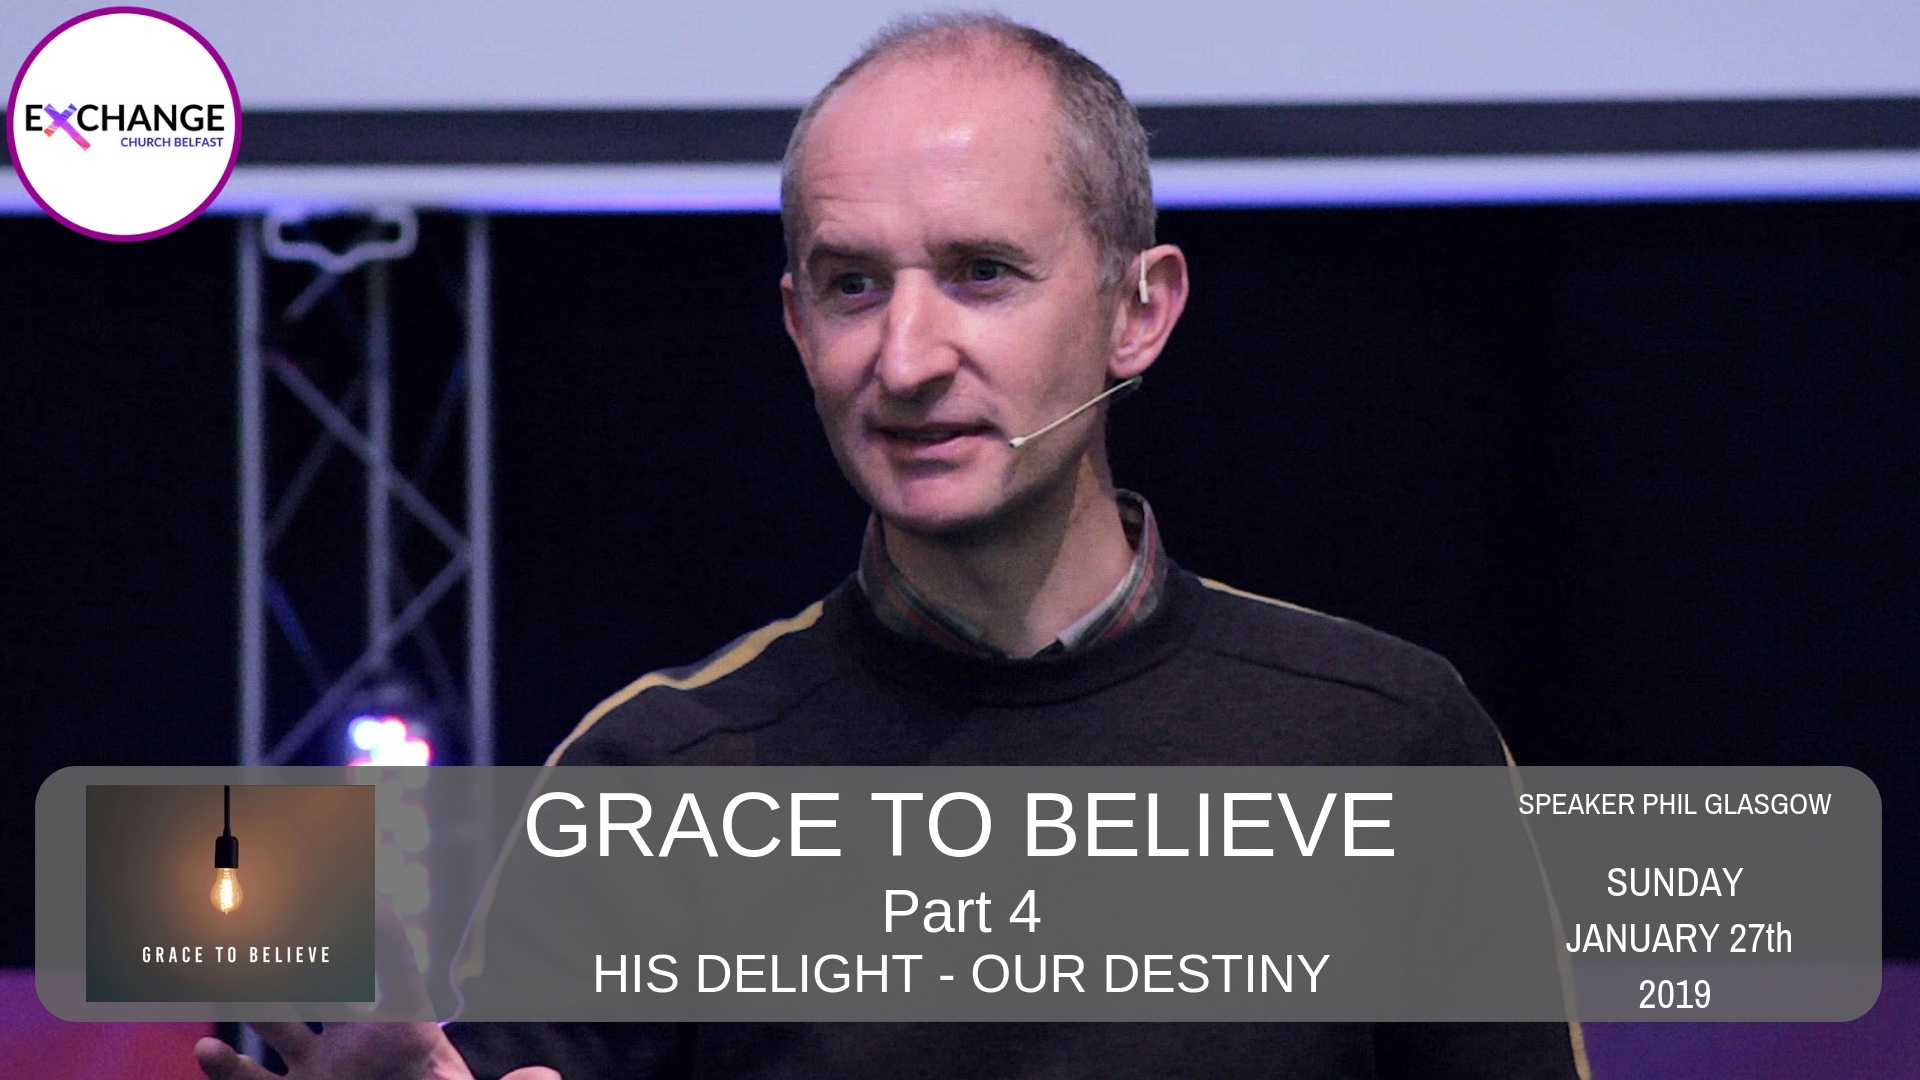 Grace to believe - Part 4 - His delight, Our destiny